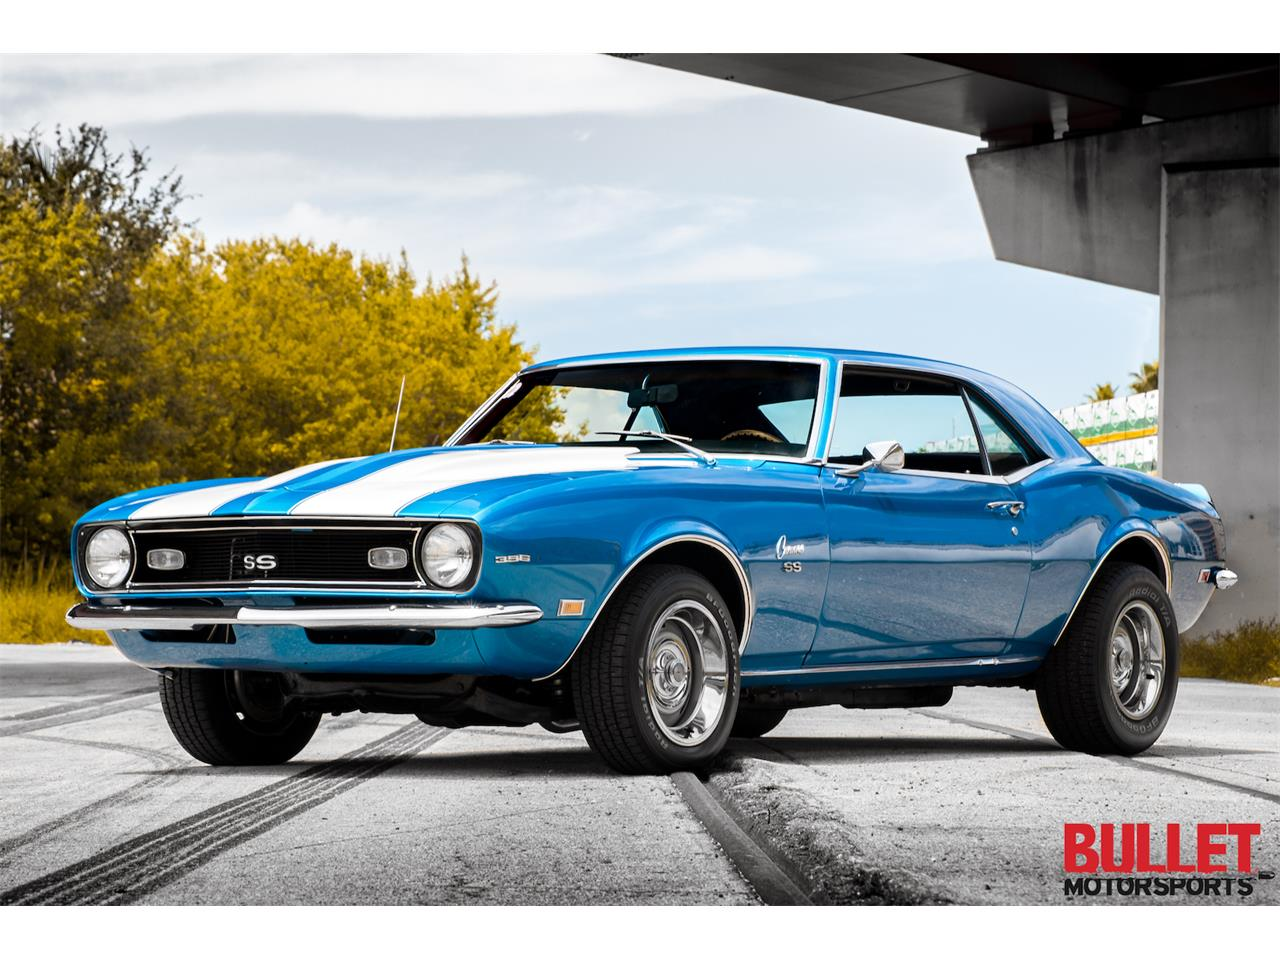 Large Picture of '68 Chevrolet Camaro located in Florida Offered by Bullet Motorsports Inc - O7VM